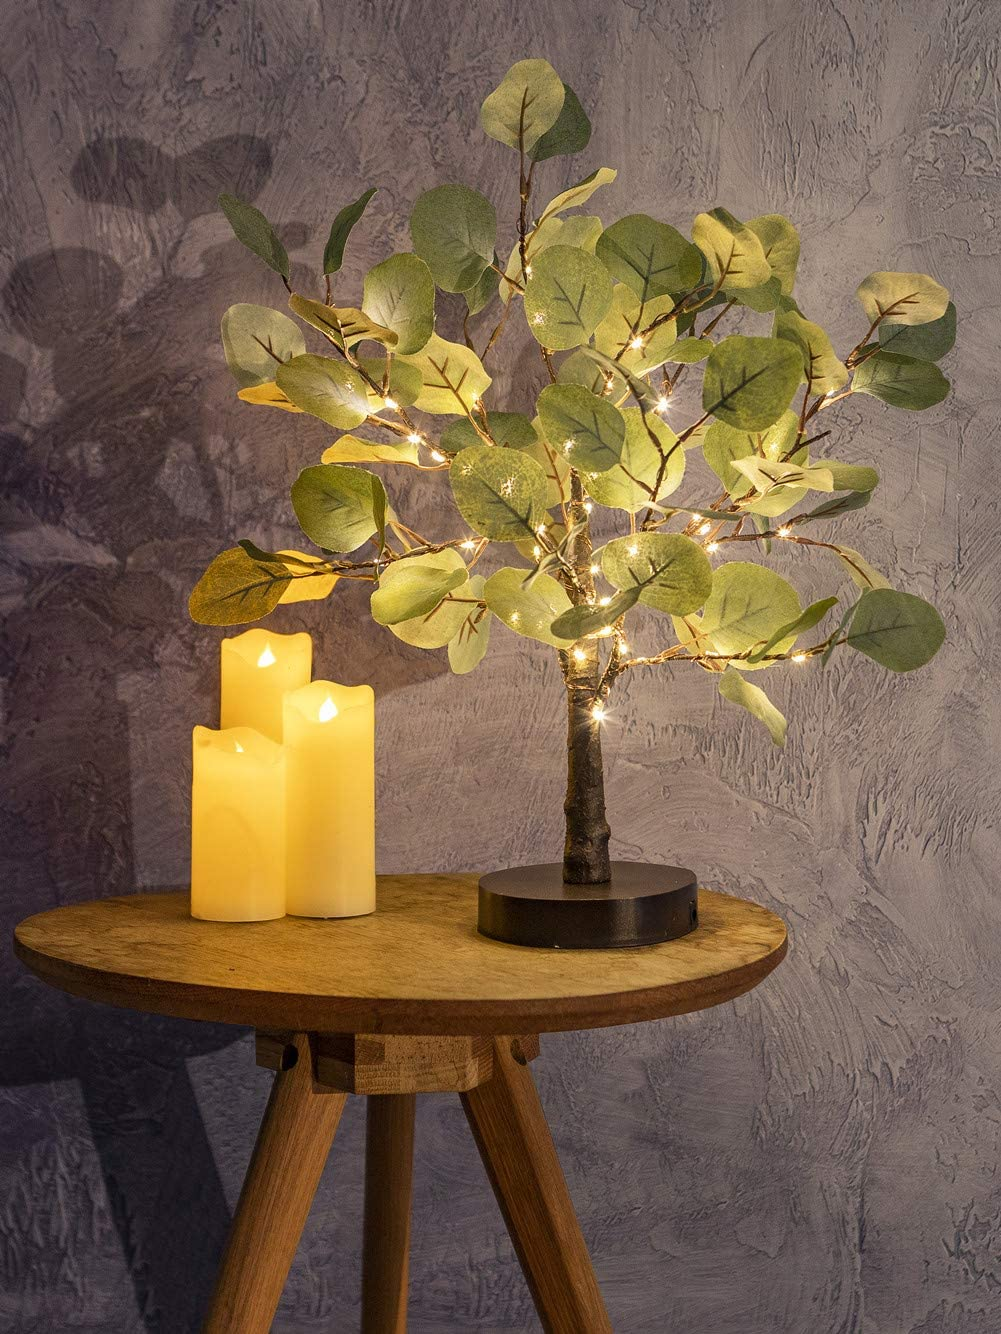 Decorative Lighted Tree |LED Warm White USB Battery Operated Tree Lamp | Artificial Tree Lights with Timer |Table Top Tree Decor Easter Valentines Holiday Home Chiristmas (Green, 18inch)